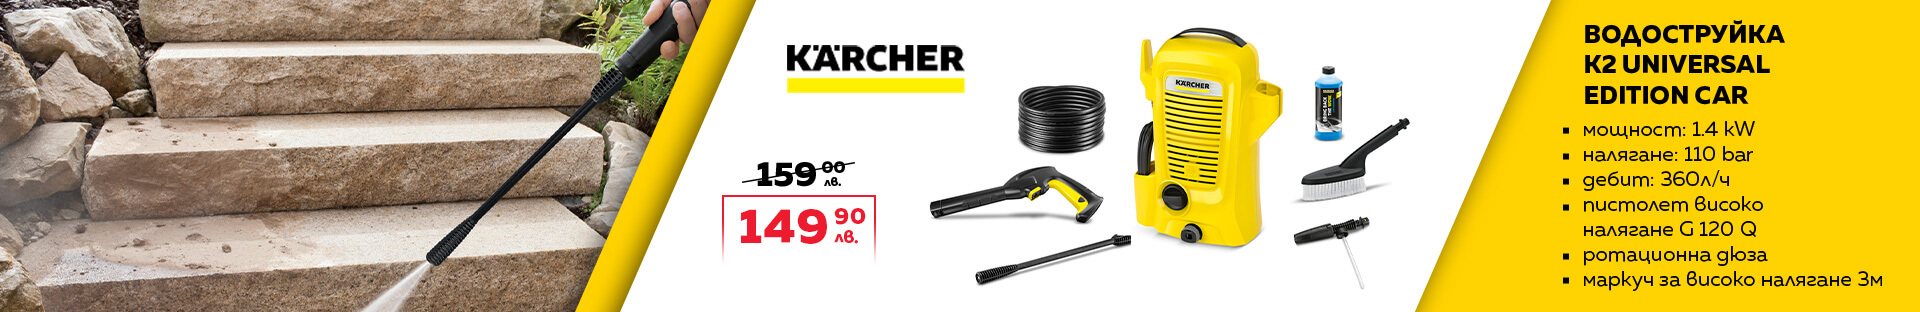 0804050065-vodostruika-k2-universal-edition-car-karcher